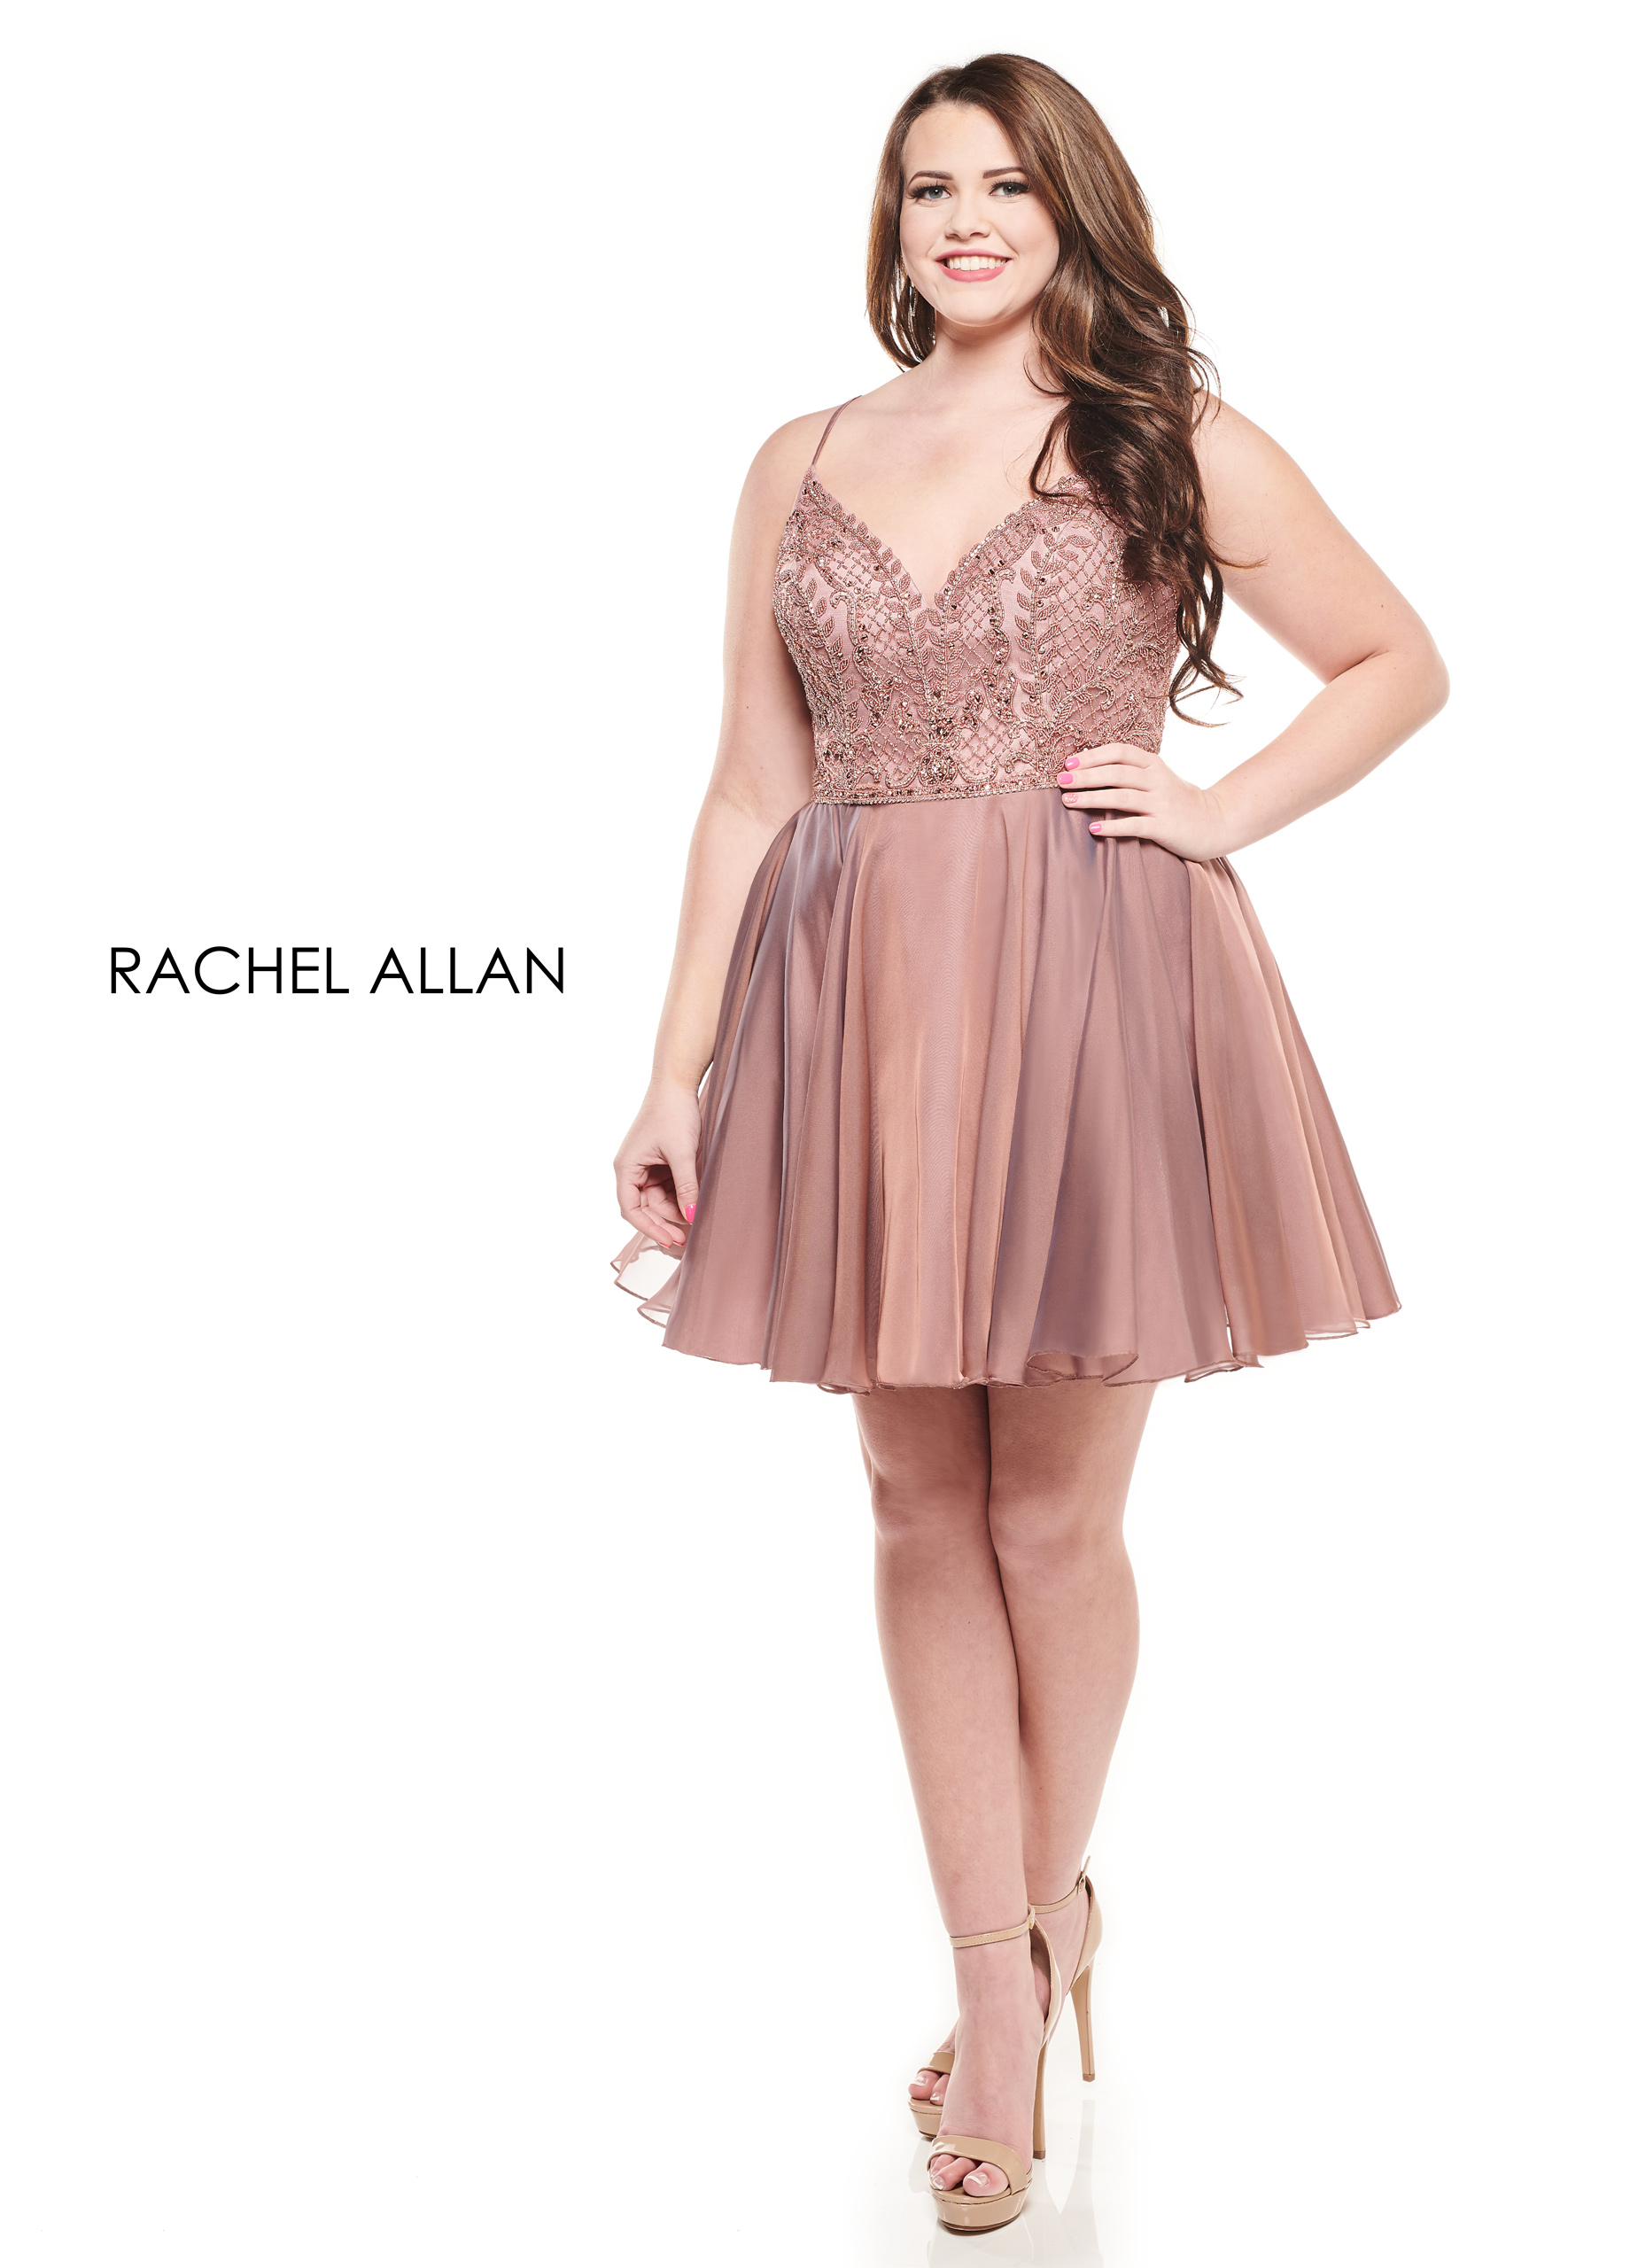 Sweetheart Full Skirt Mini Homecoming Curves in Rose Gold Color